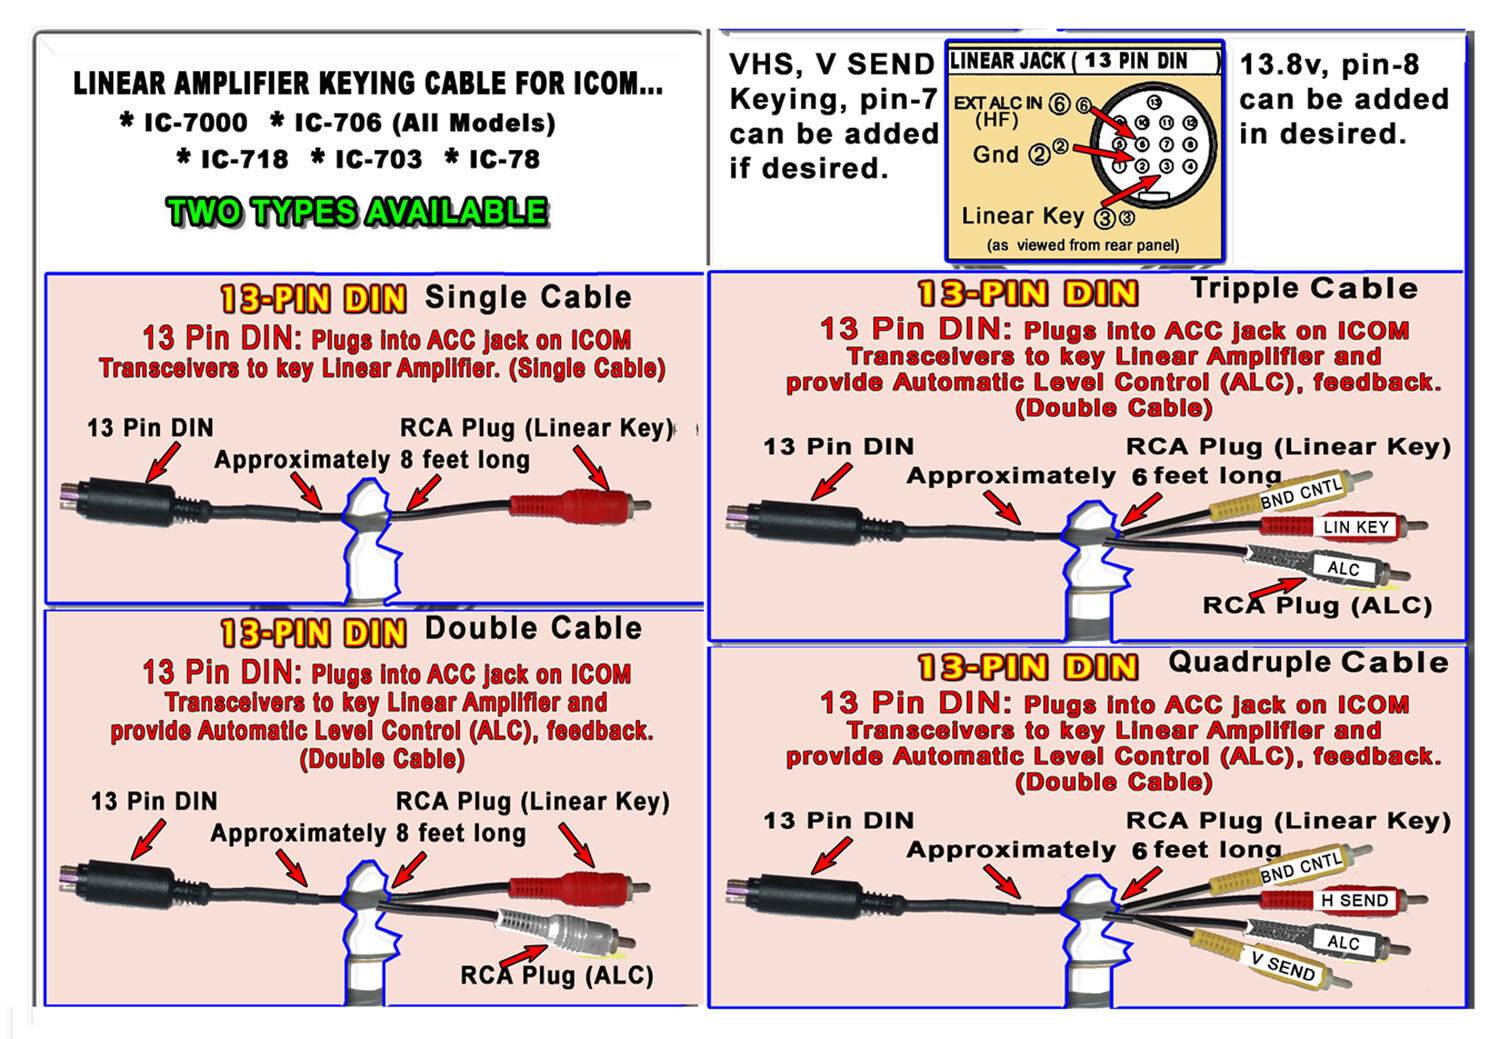 7 Pin Din Plug Icom Amplifier Keying Cable IC-756 with ALC